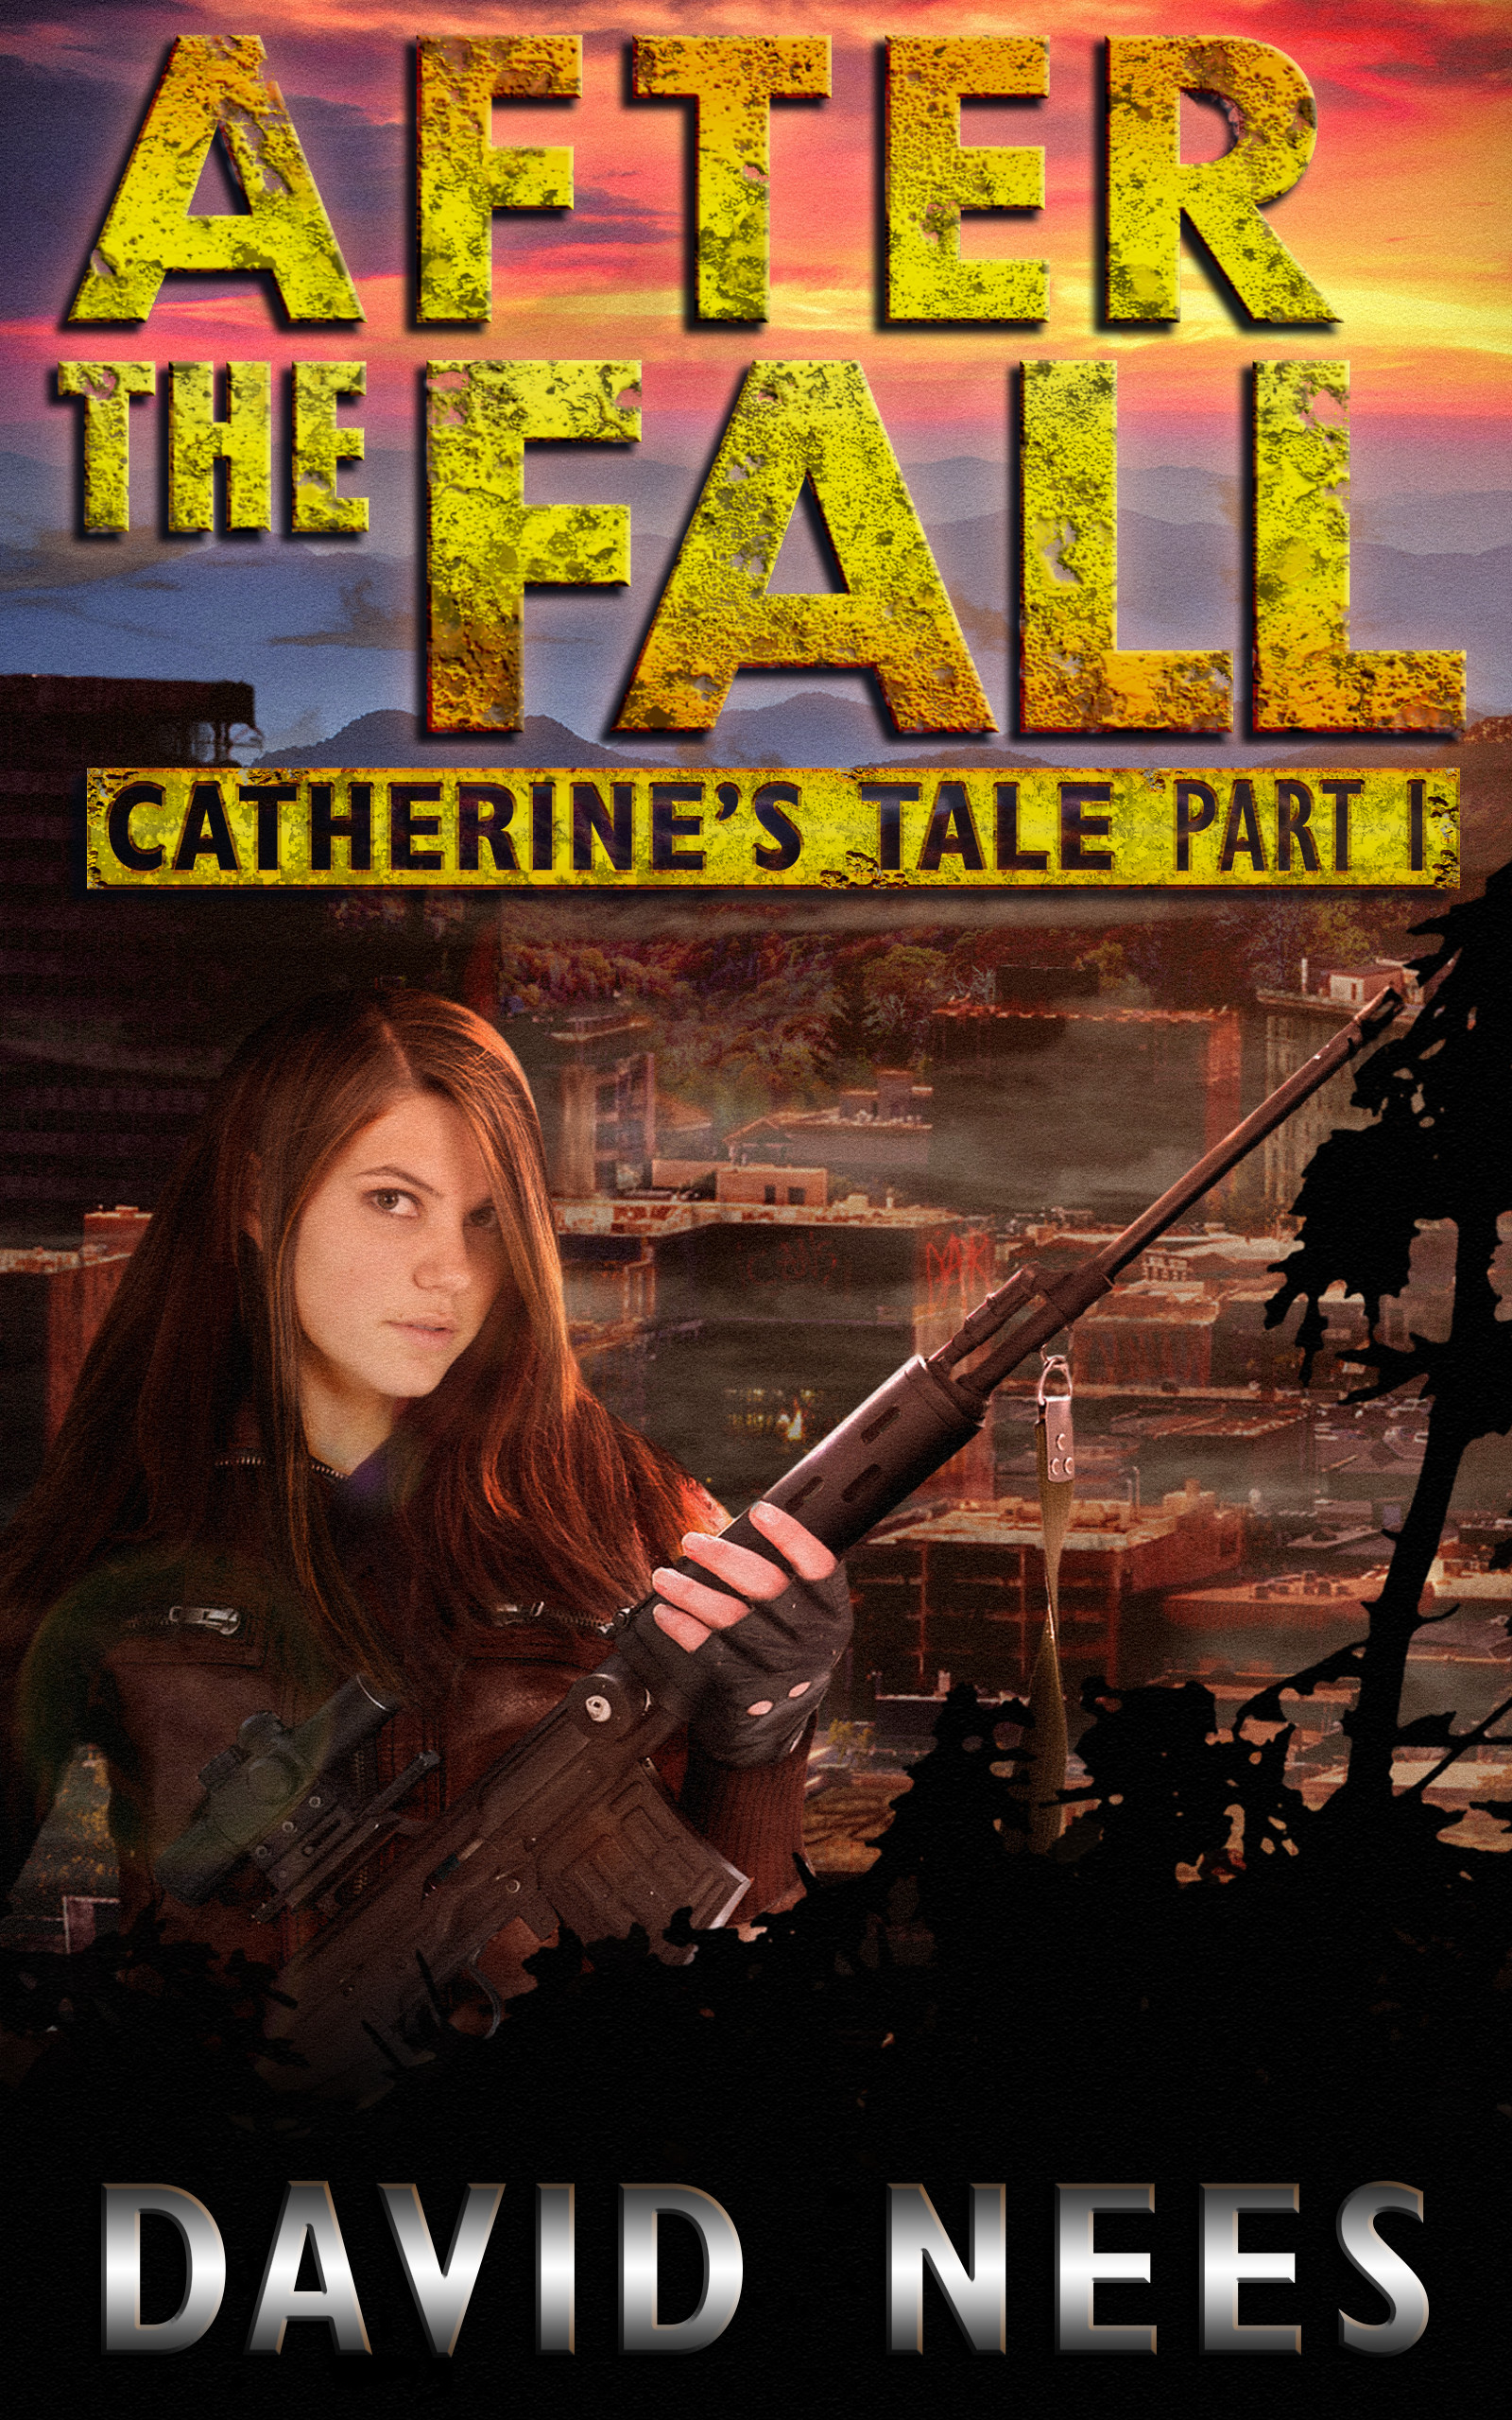 After the Fall: Catherine's Tale Parts 1 & 2 by David Nees